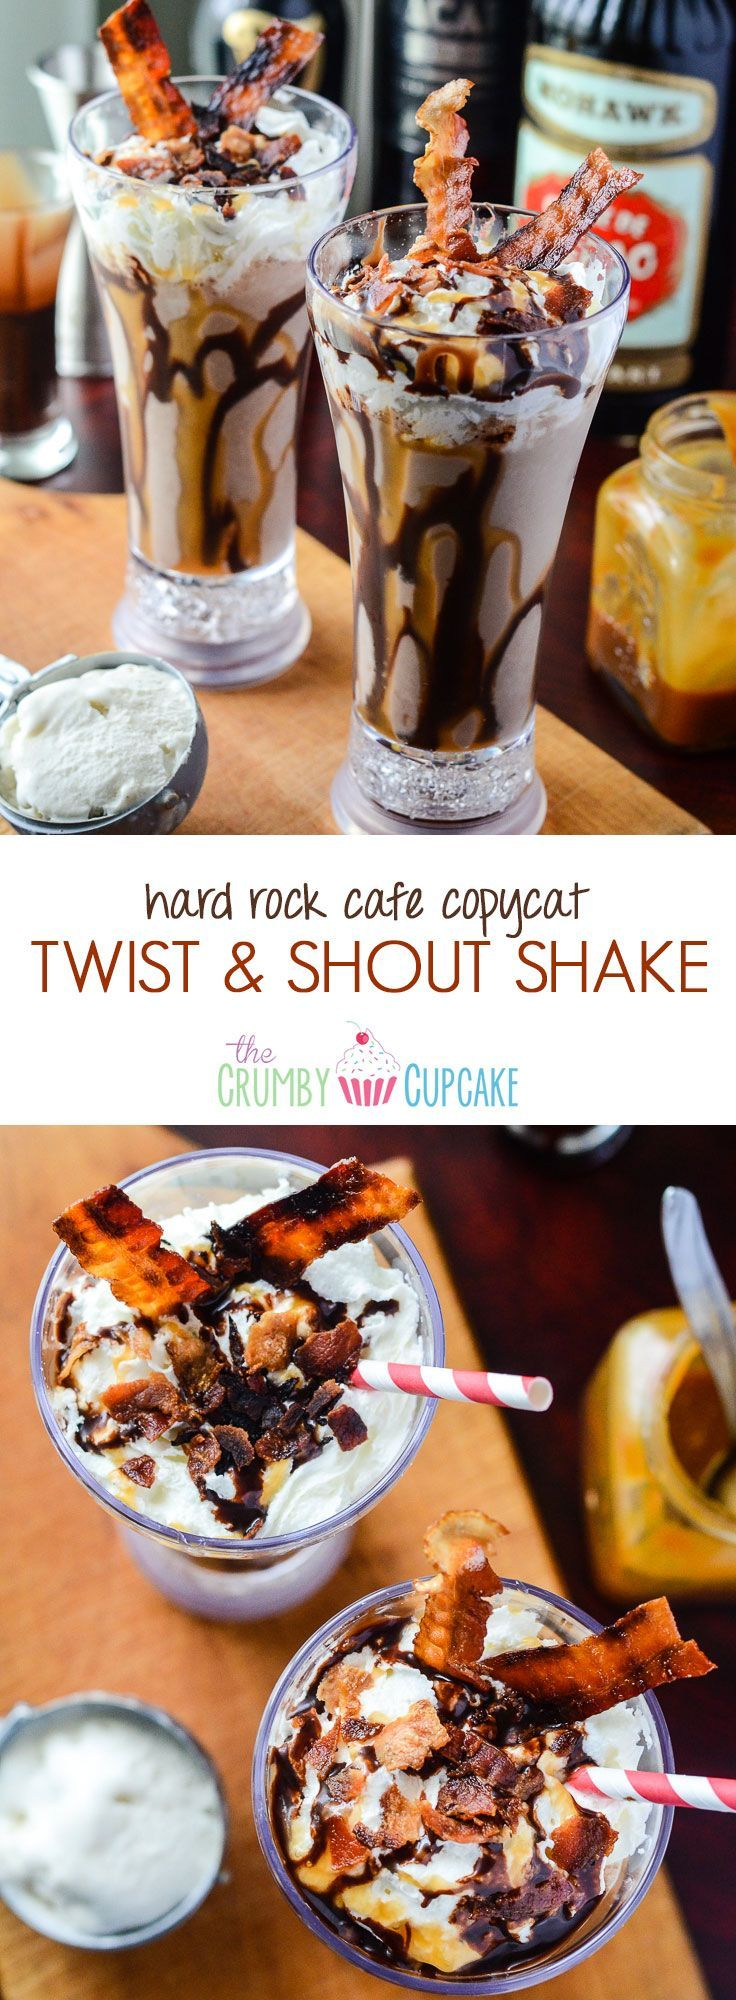 Twist & Shout Shake | A Hard Rock Cafe copycat, this boozy milkshake combines ch…